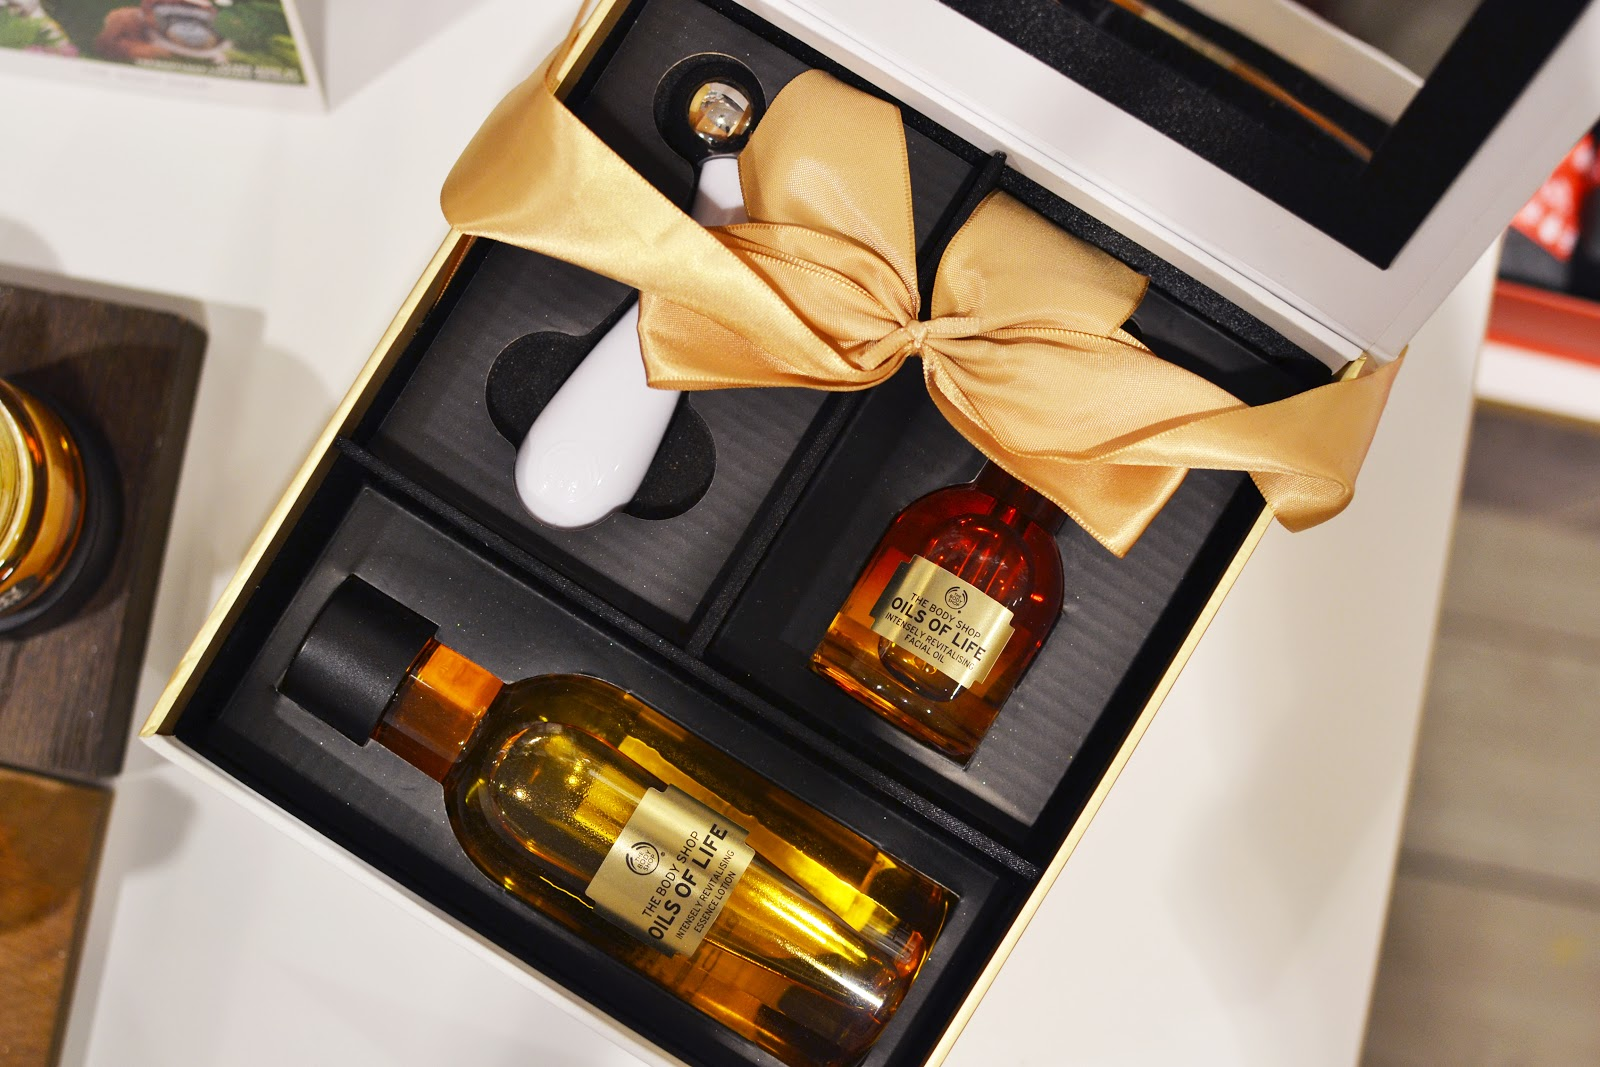 the body shop oils of life gift set